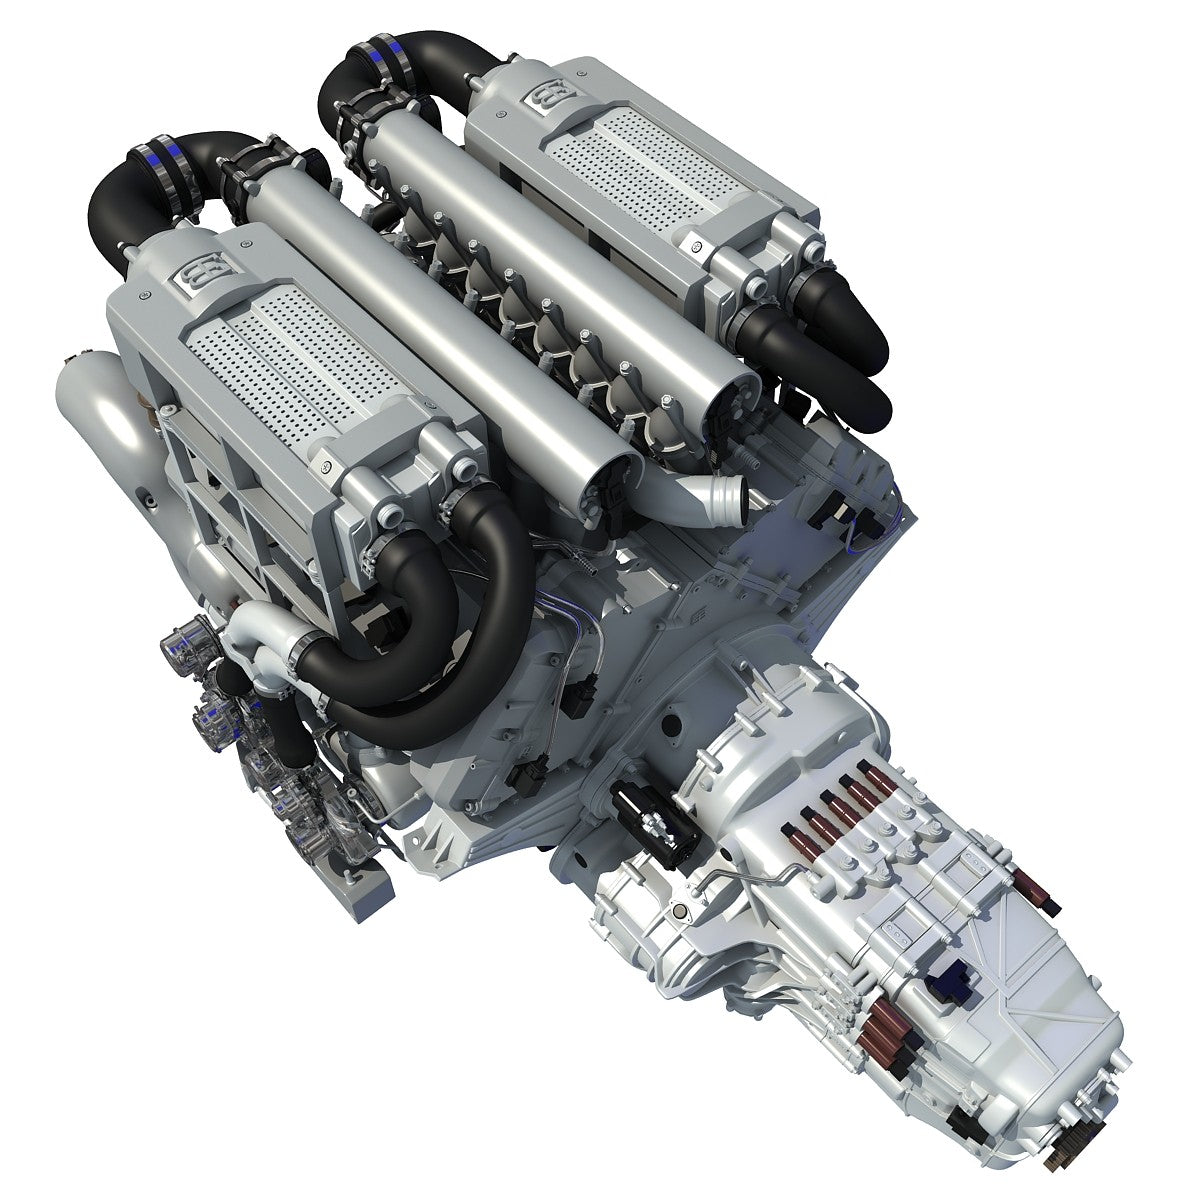 Bugatti W16 Engine 3D Model